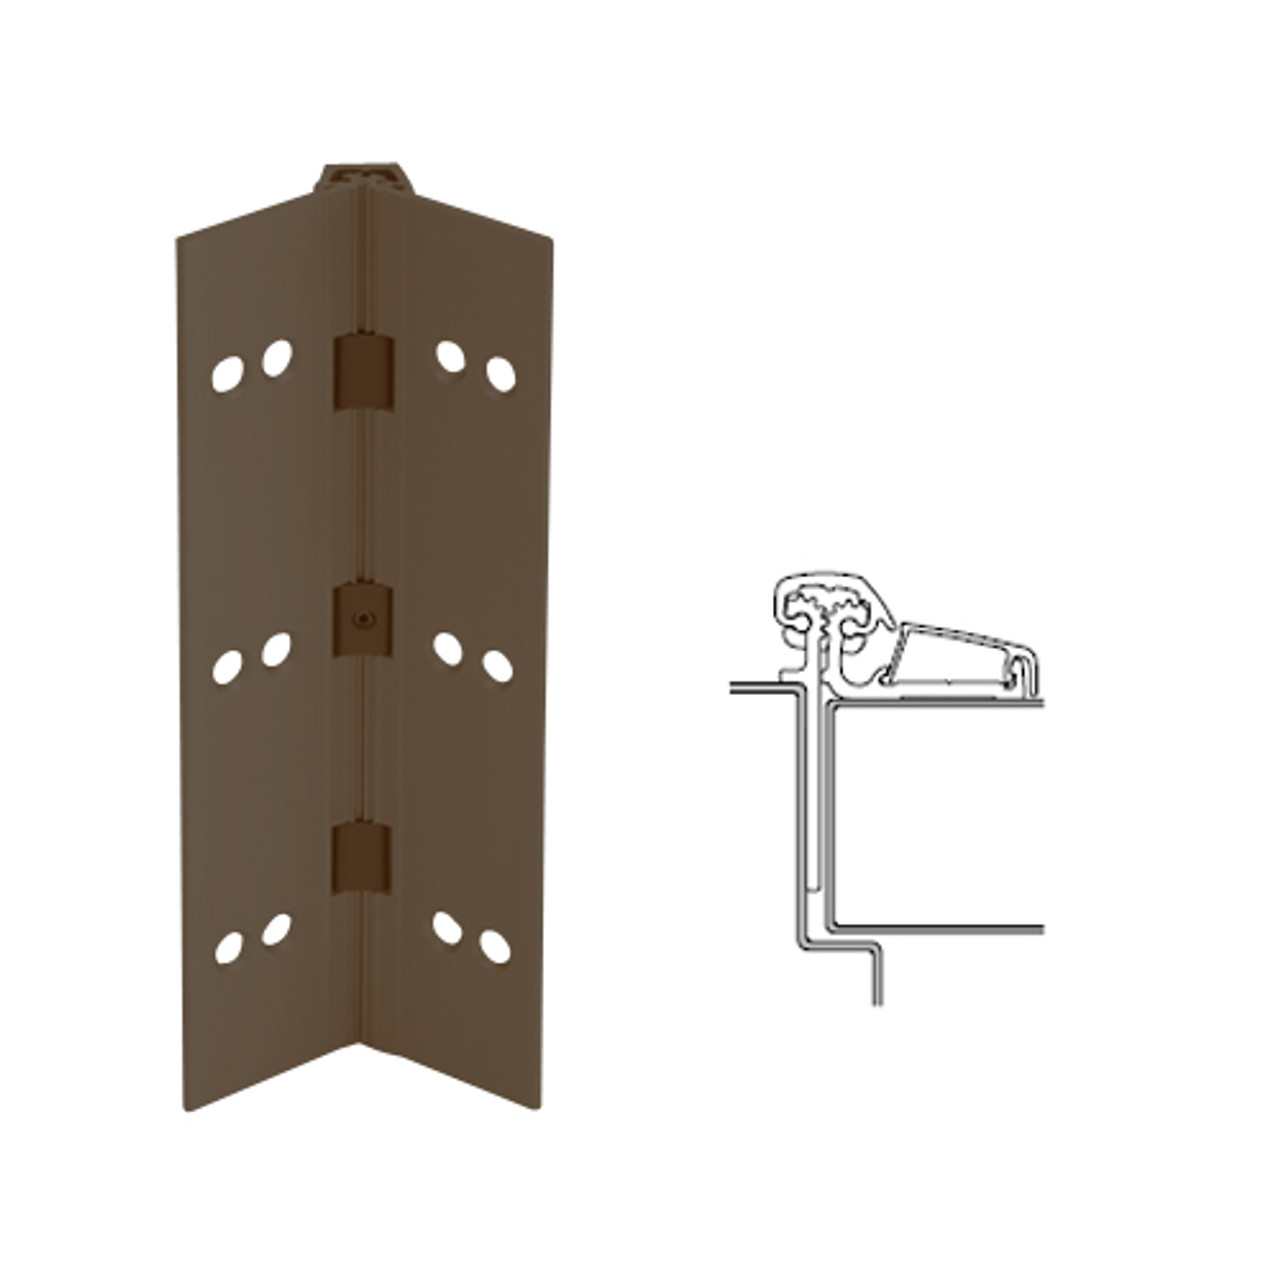 053XY-313AN-85-WD IVES Adjustable Half Surface Continuous Geared Hinges with Wood Screws in Dark Bronze Anodized